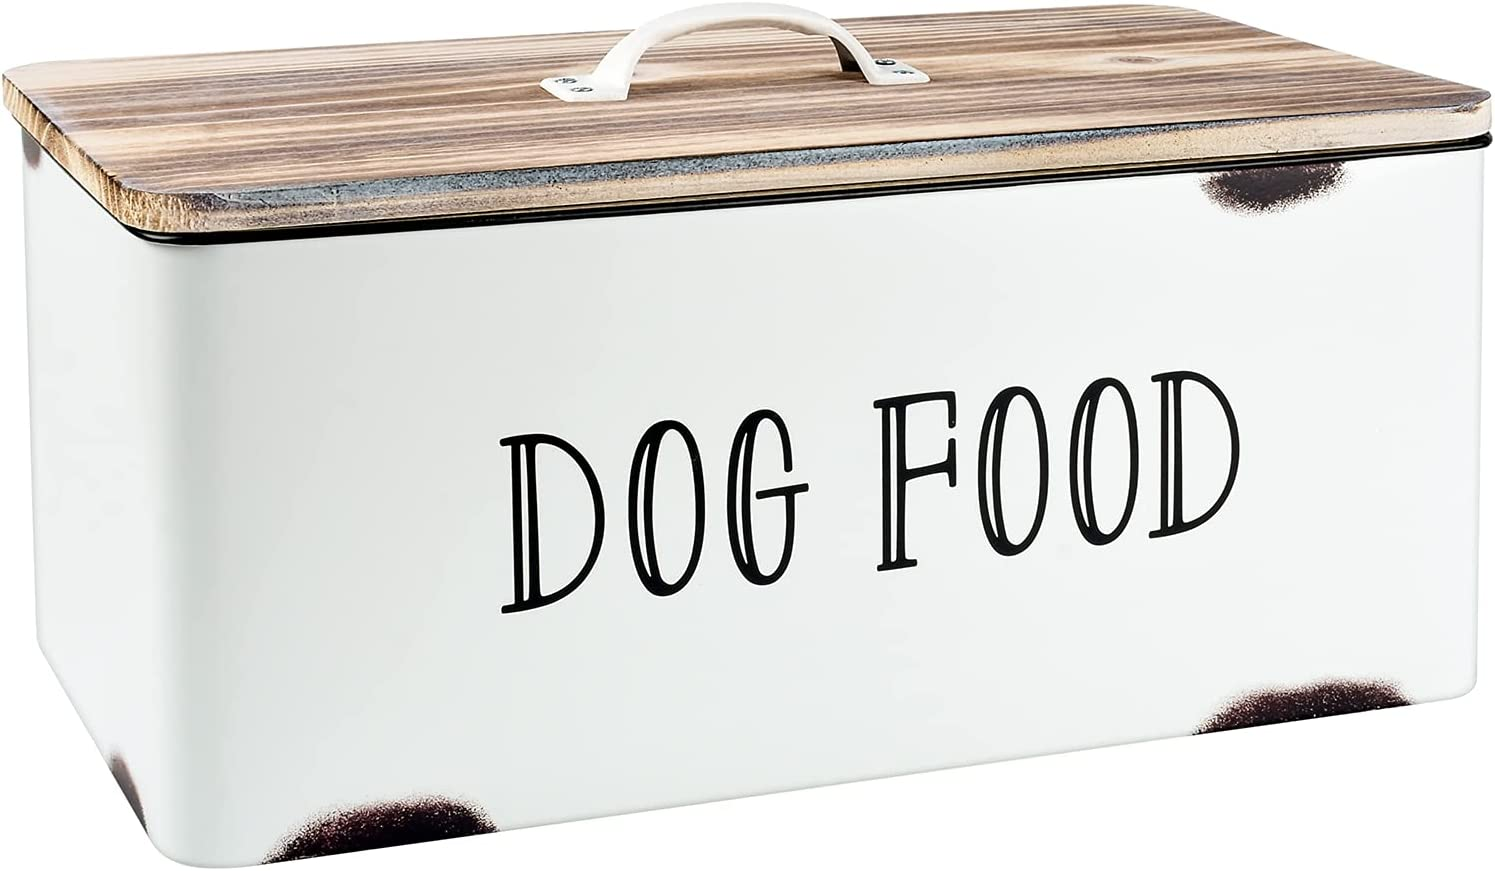 JIAYUAN Farmhouse Dog Food Storage Container White Dog Treat Dispenser Tin Pet Food Canister Bin with Wood Lid for Dogs Rustic